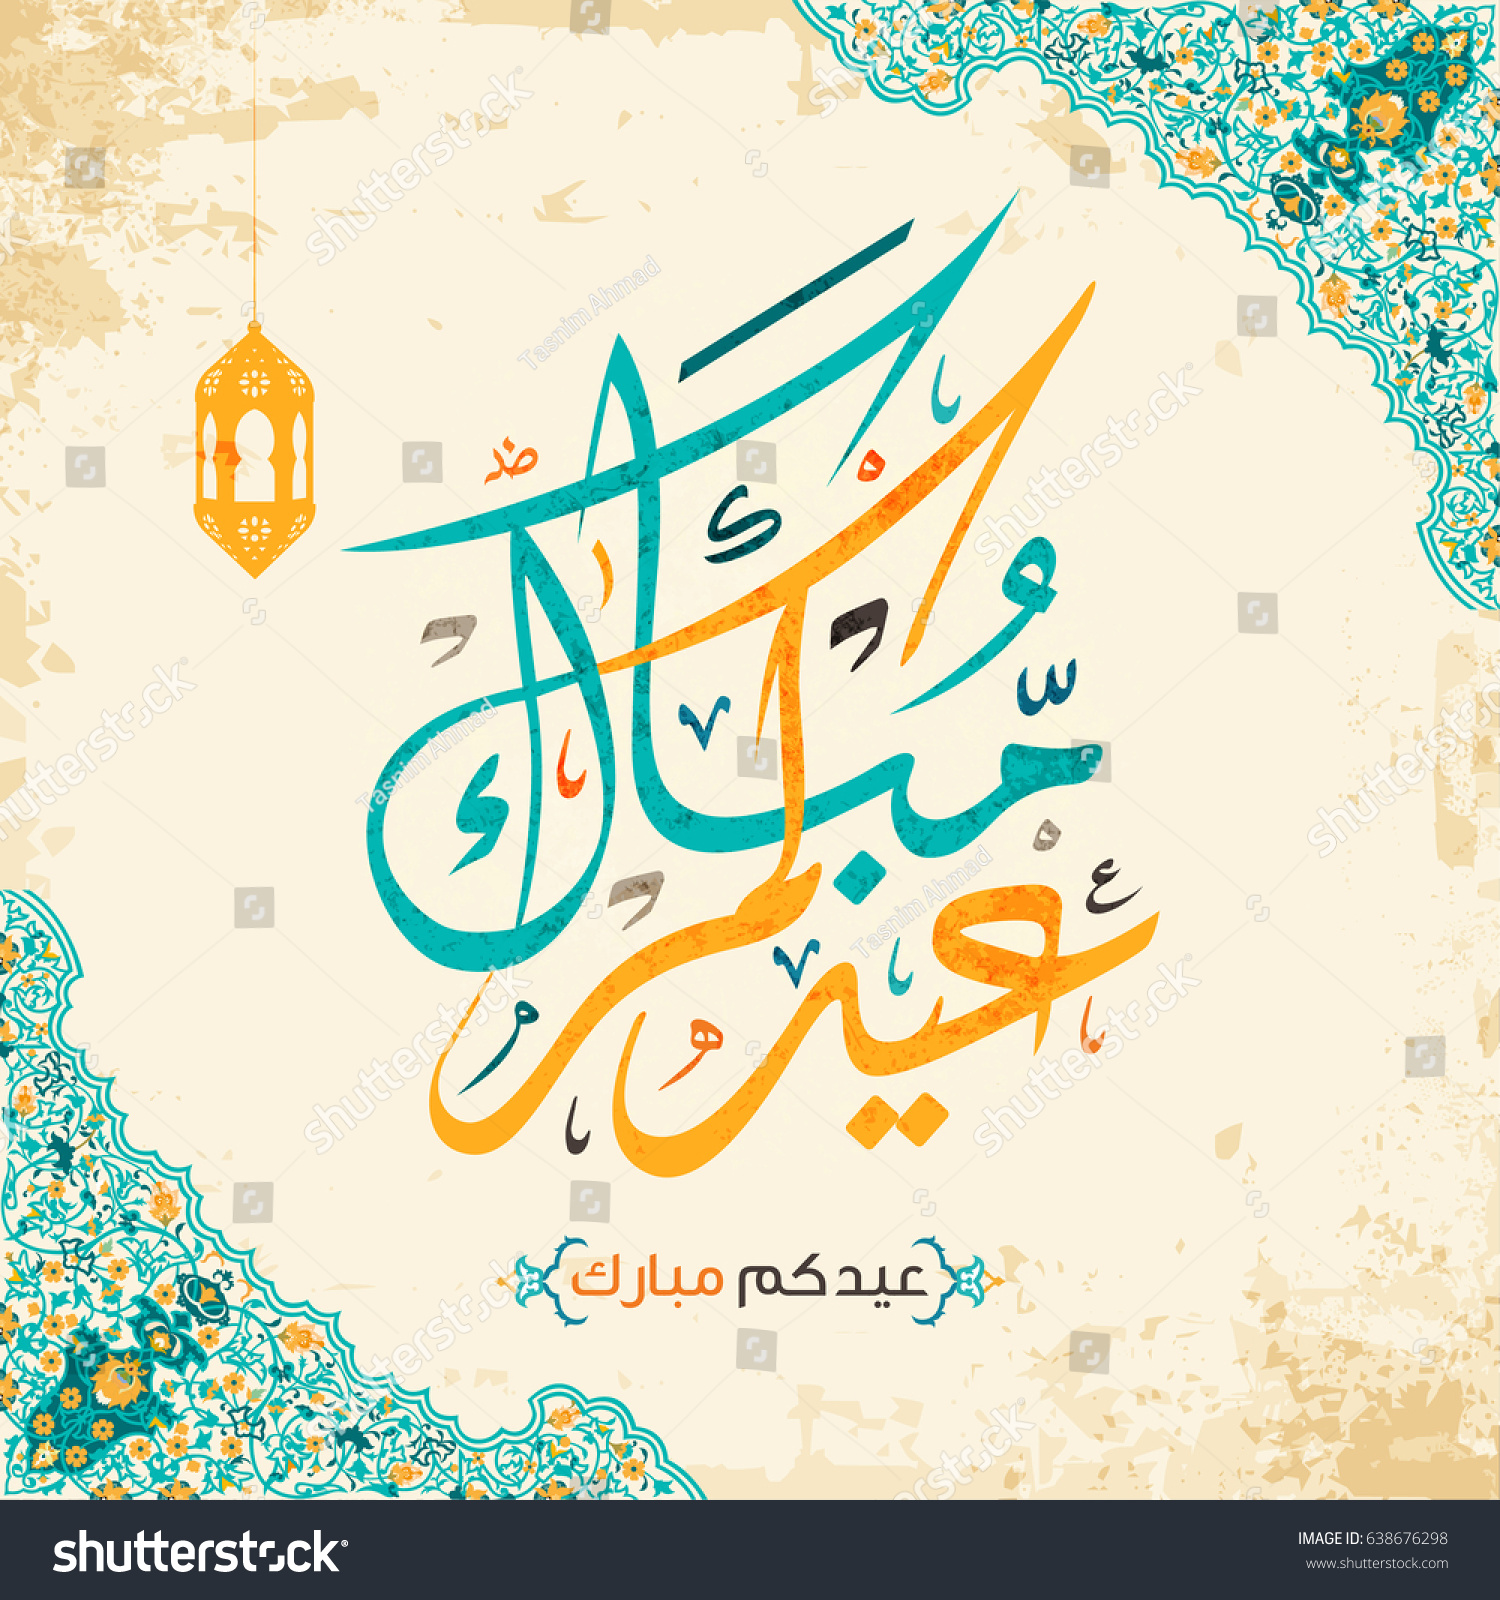 Happy eid arabic calligraphy style stock vector